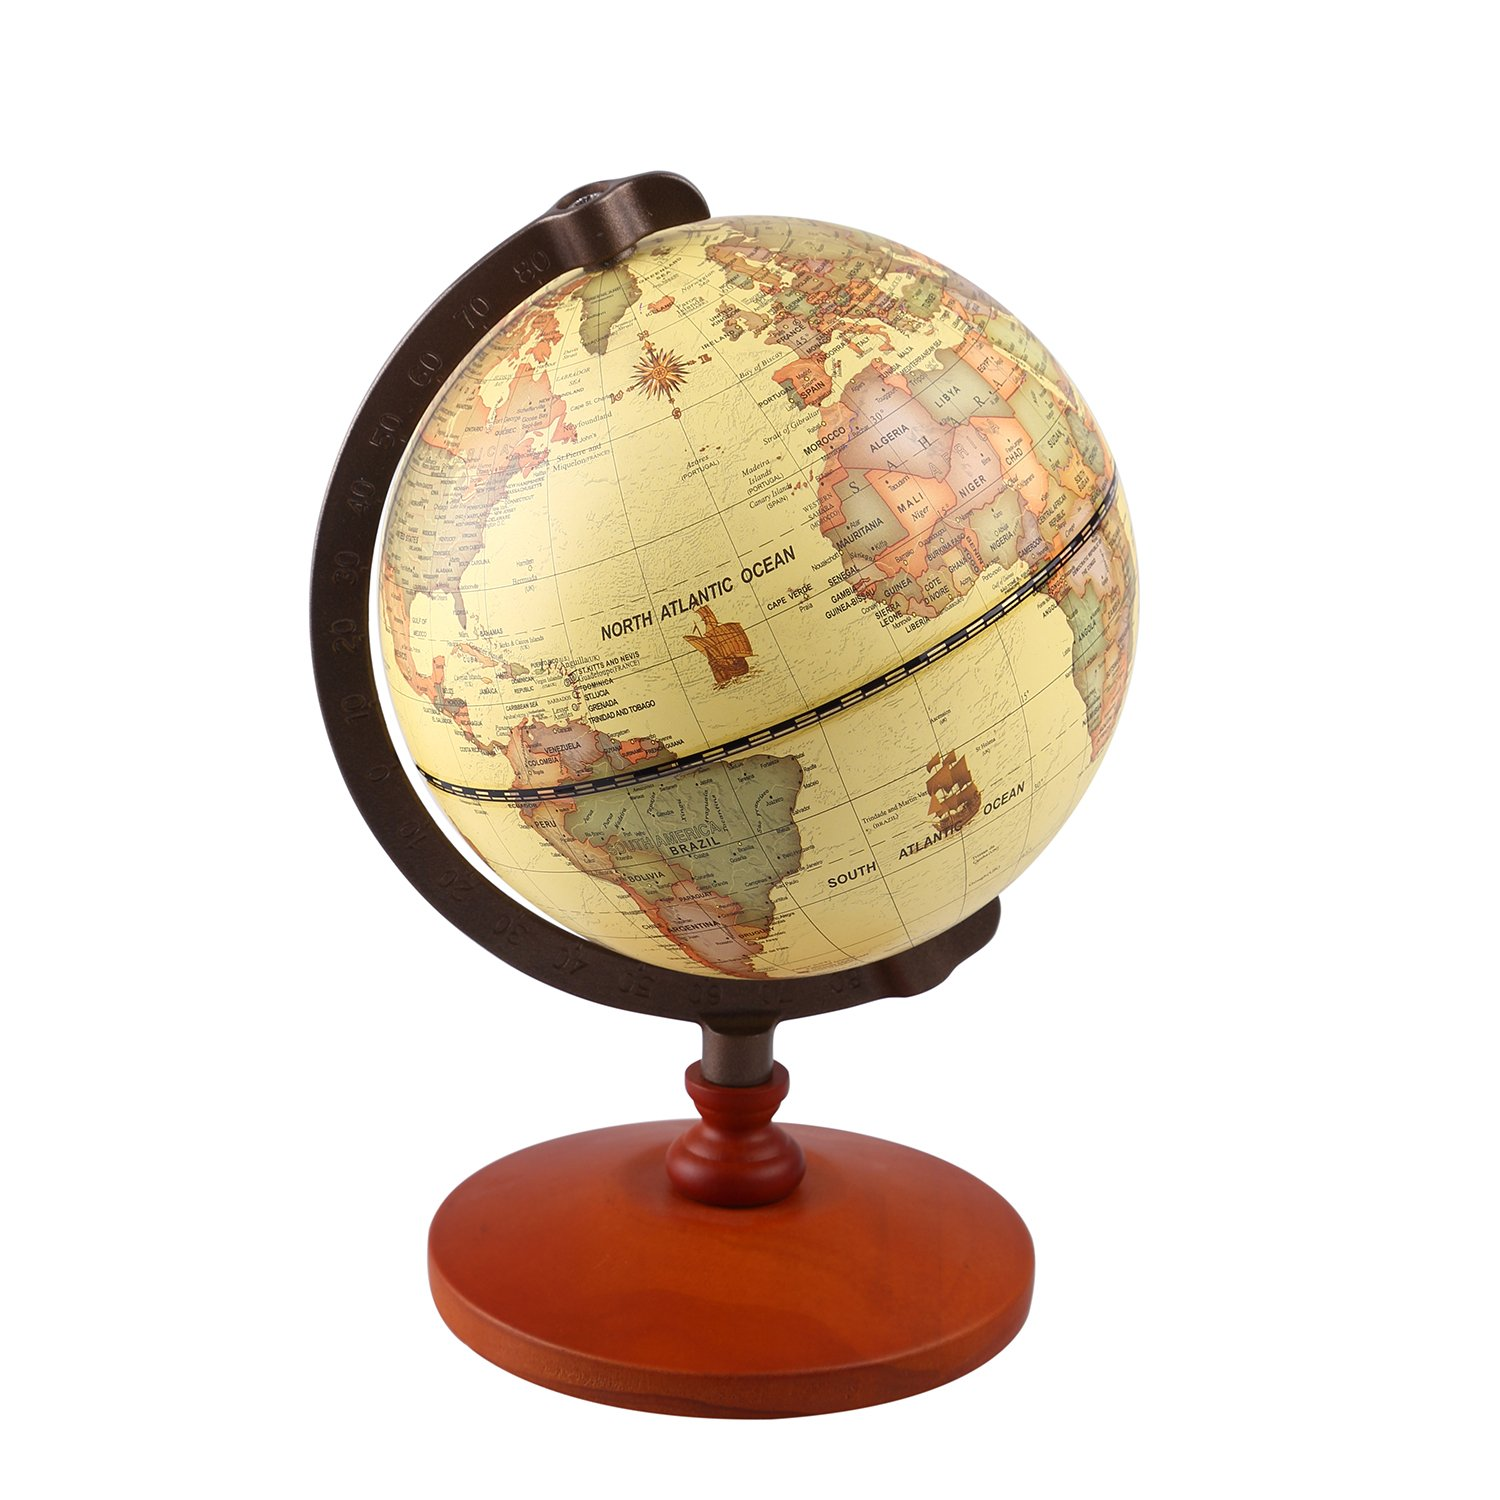 TTKTK Vintage World Globe Antique Decorative Desktop Globe Rotating Earth Geography Globe Wooden Base Educational Globe Wedding Gift with Magnifying Glass